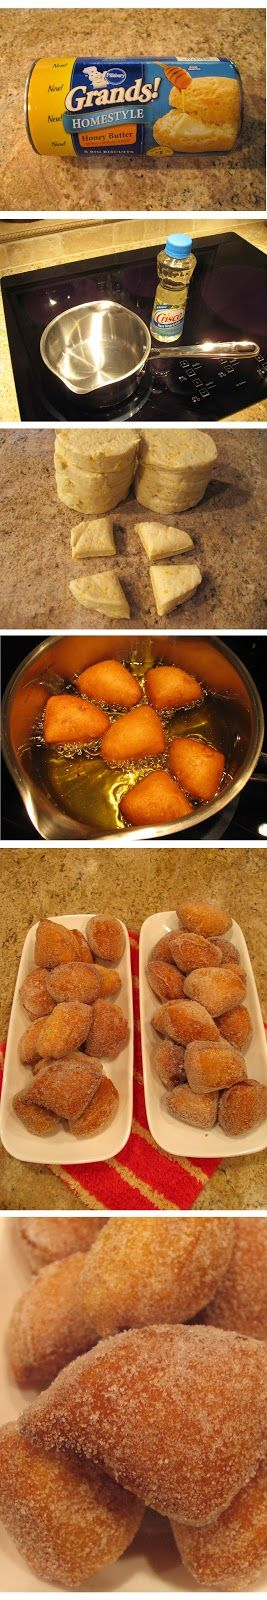 Easy Biscuit Doughnuts - Cut biscuits into quarters, drop in 200 - 240° oil for a couple of minutes (flip halfway), cool sightly on paper towel, roll in sugar, brown sugar, powdered sugar, ENJOY